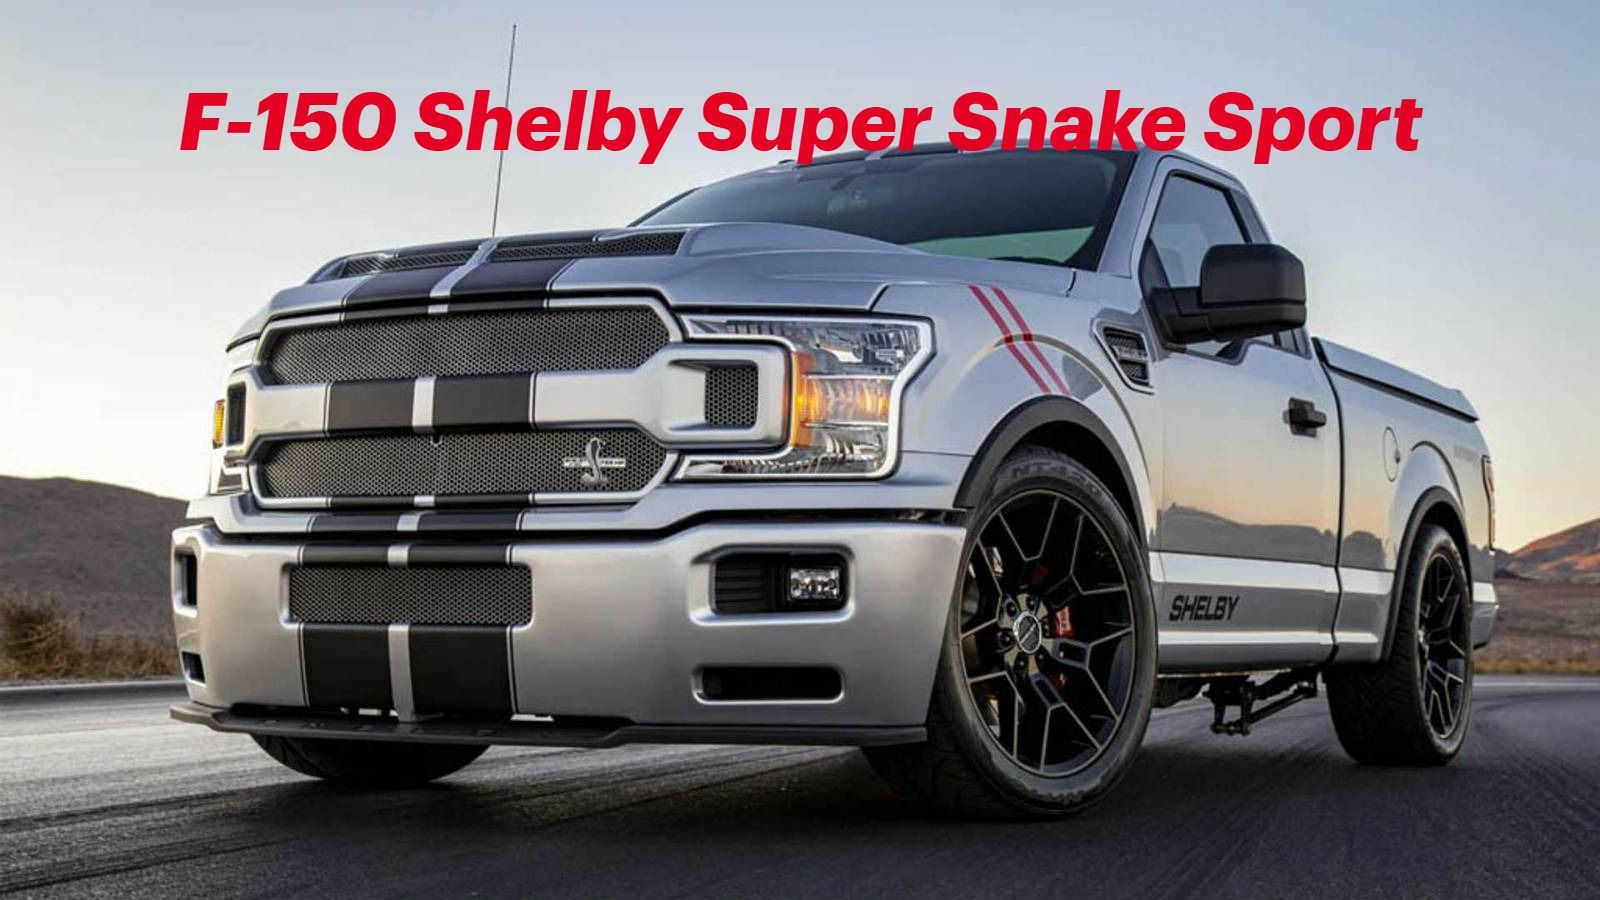 Shelby F 150 Super Snake Sport 770 Horsepower In 2020 Super